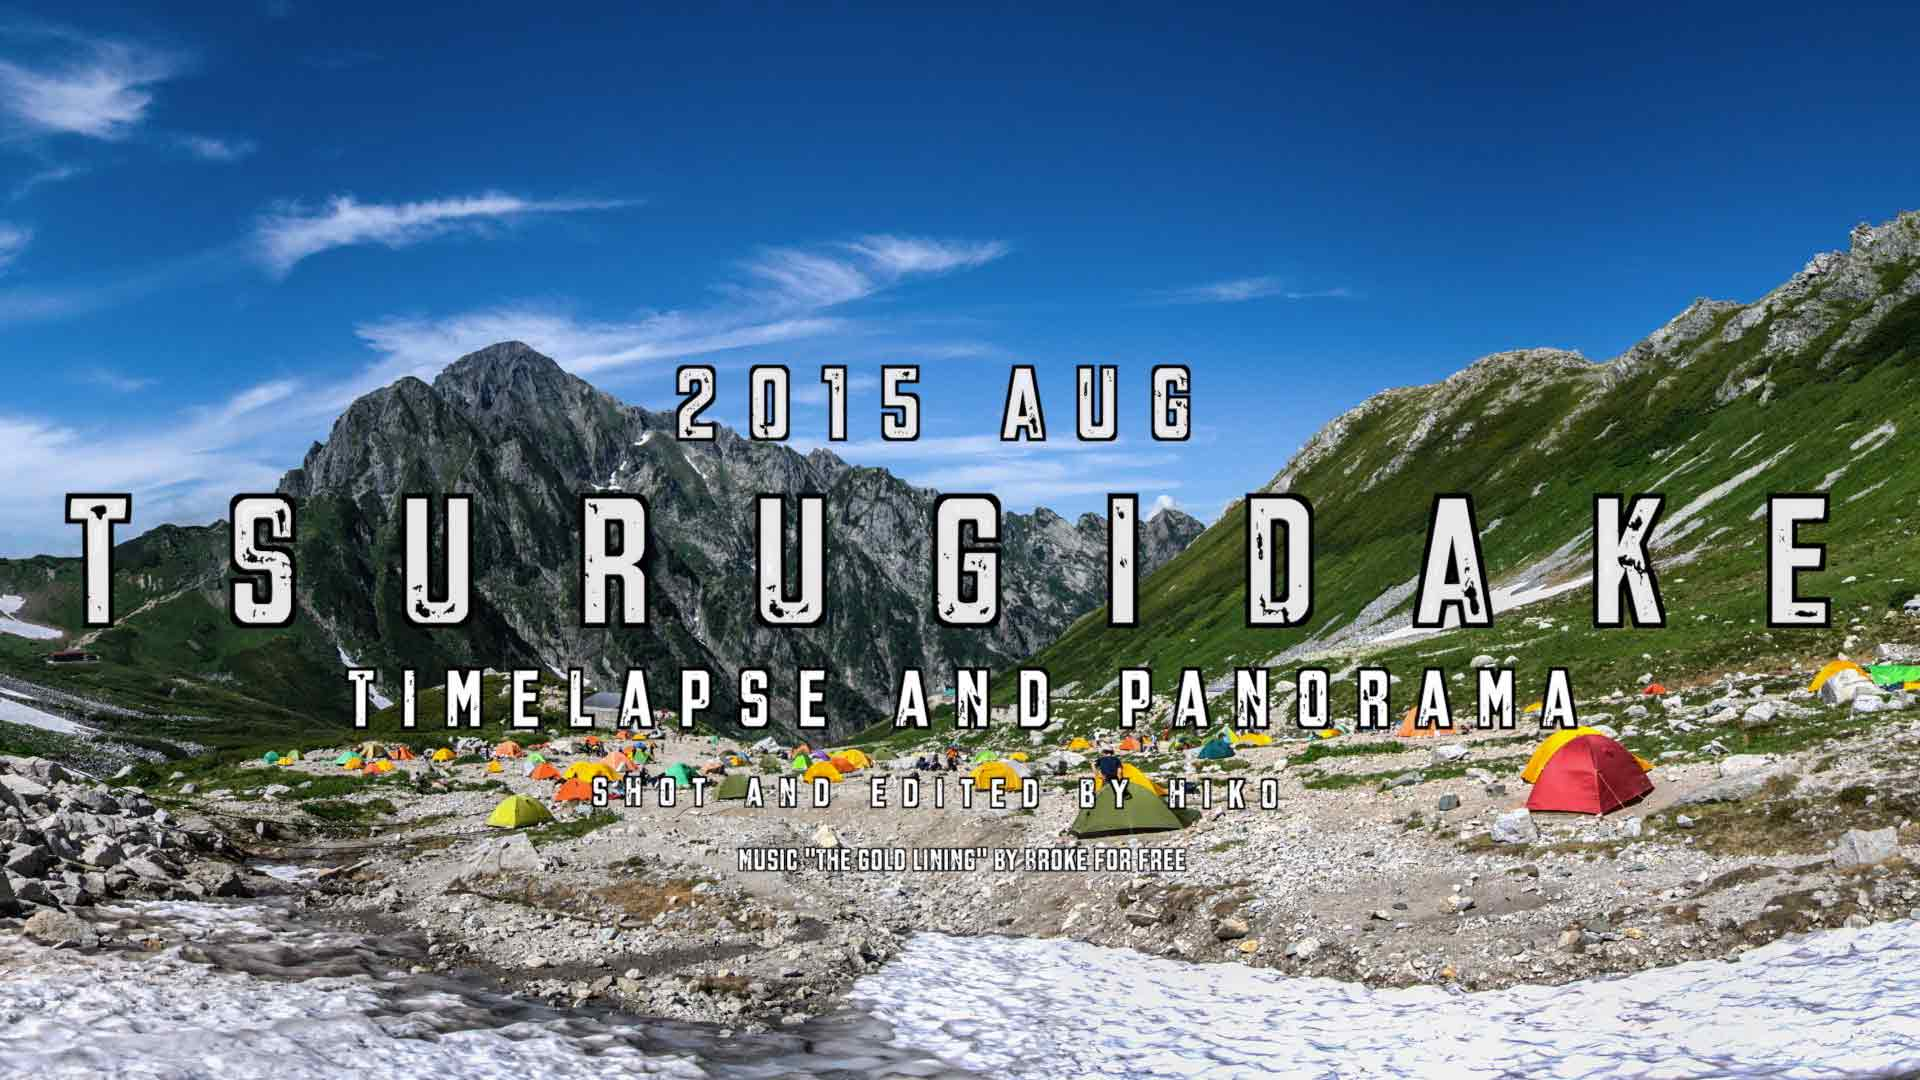 Tsurugidake-Timelapse-and-Panorama-Featured-Image